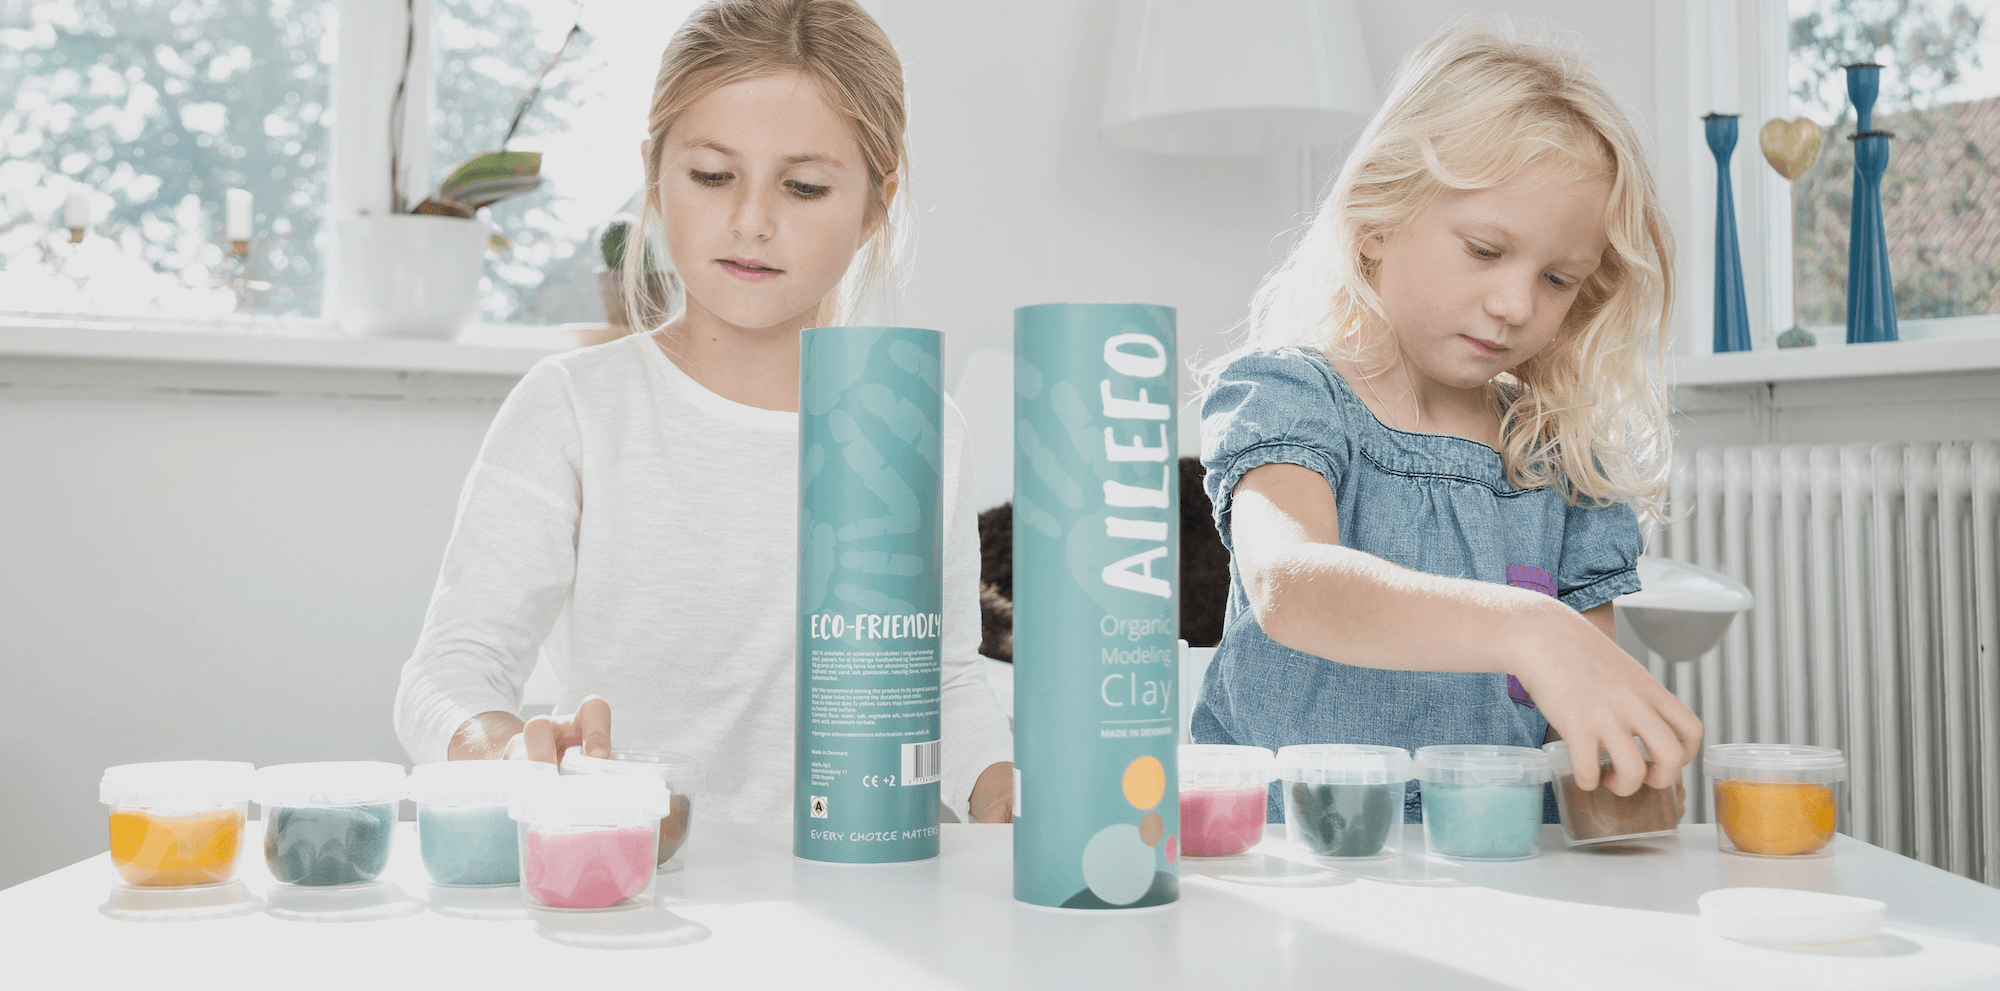 girls play with ailefo organic modeling clay